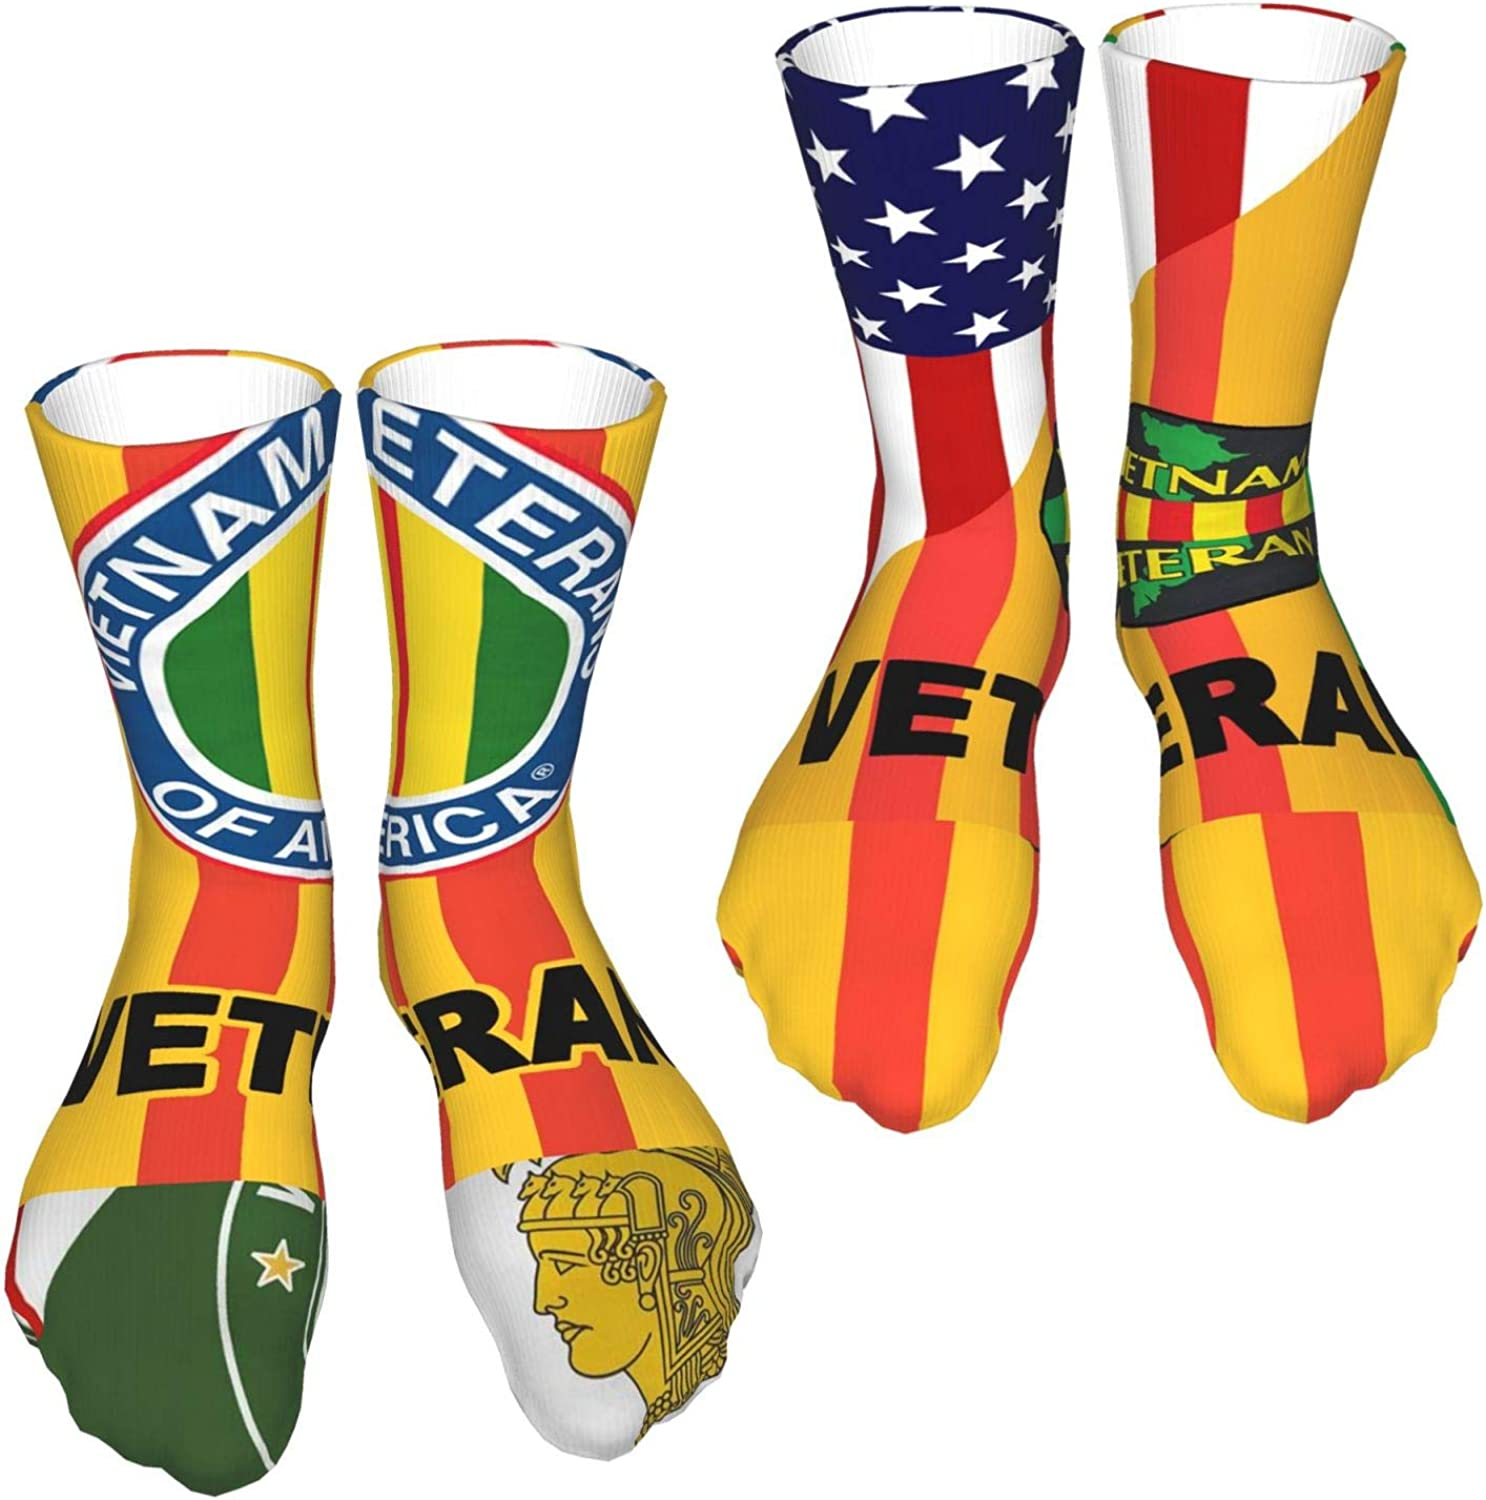 Two Pairs Of Unisex Casual Breathable Sports Socks Suitable For All Seasons Vietnam Veteran C